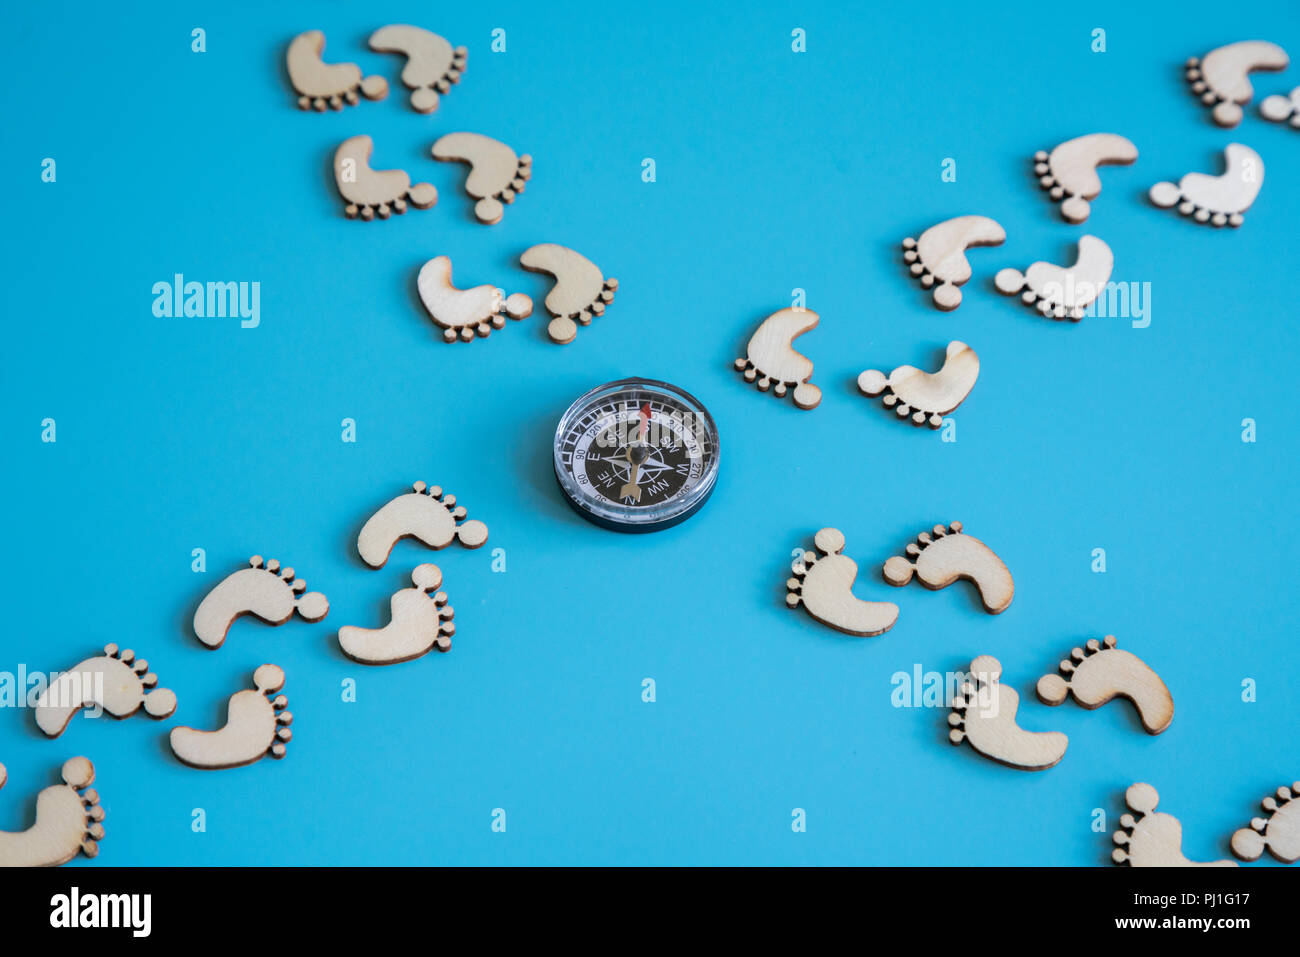 The concept of choosing the right way. Footprints on a blue background and a compass. - Stock Image